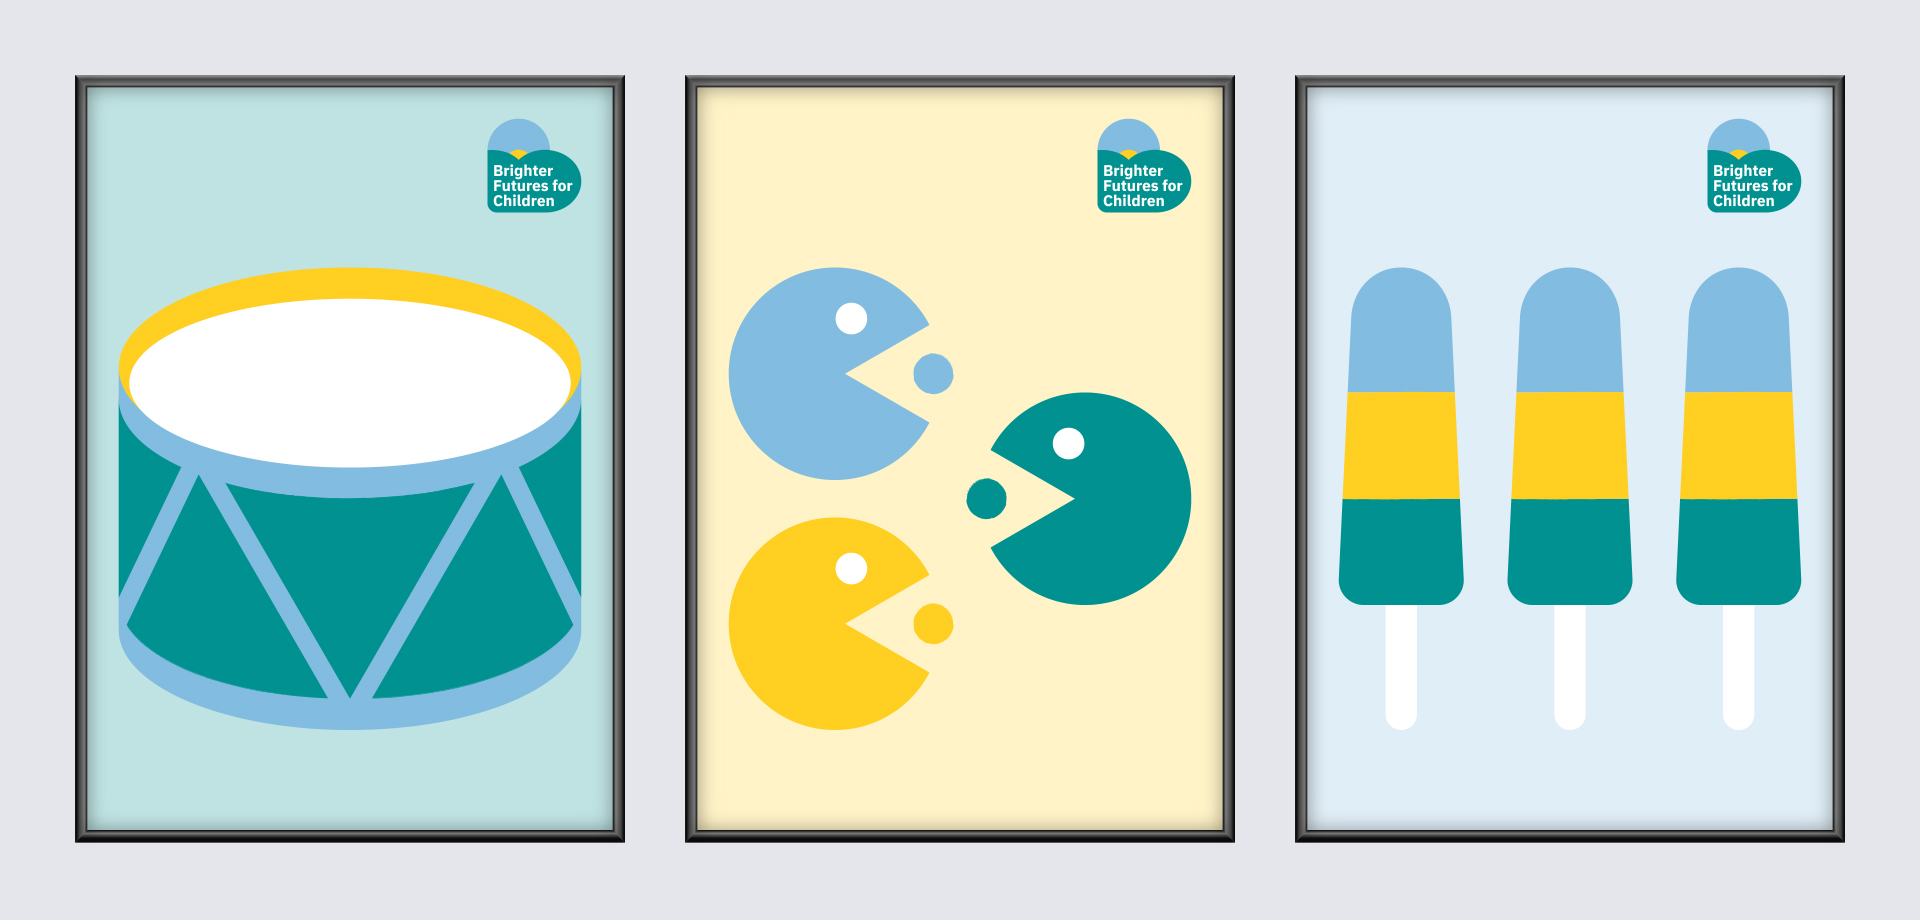 Brighter Futures poster illustrations